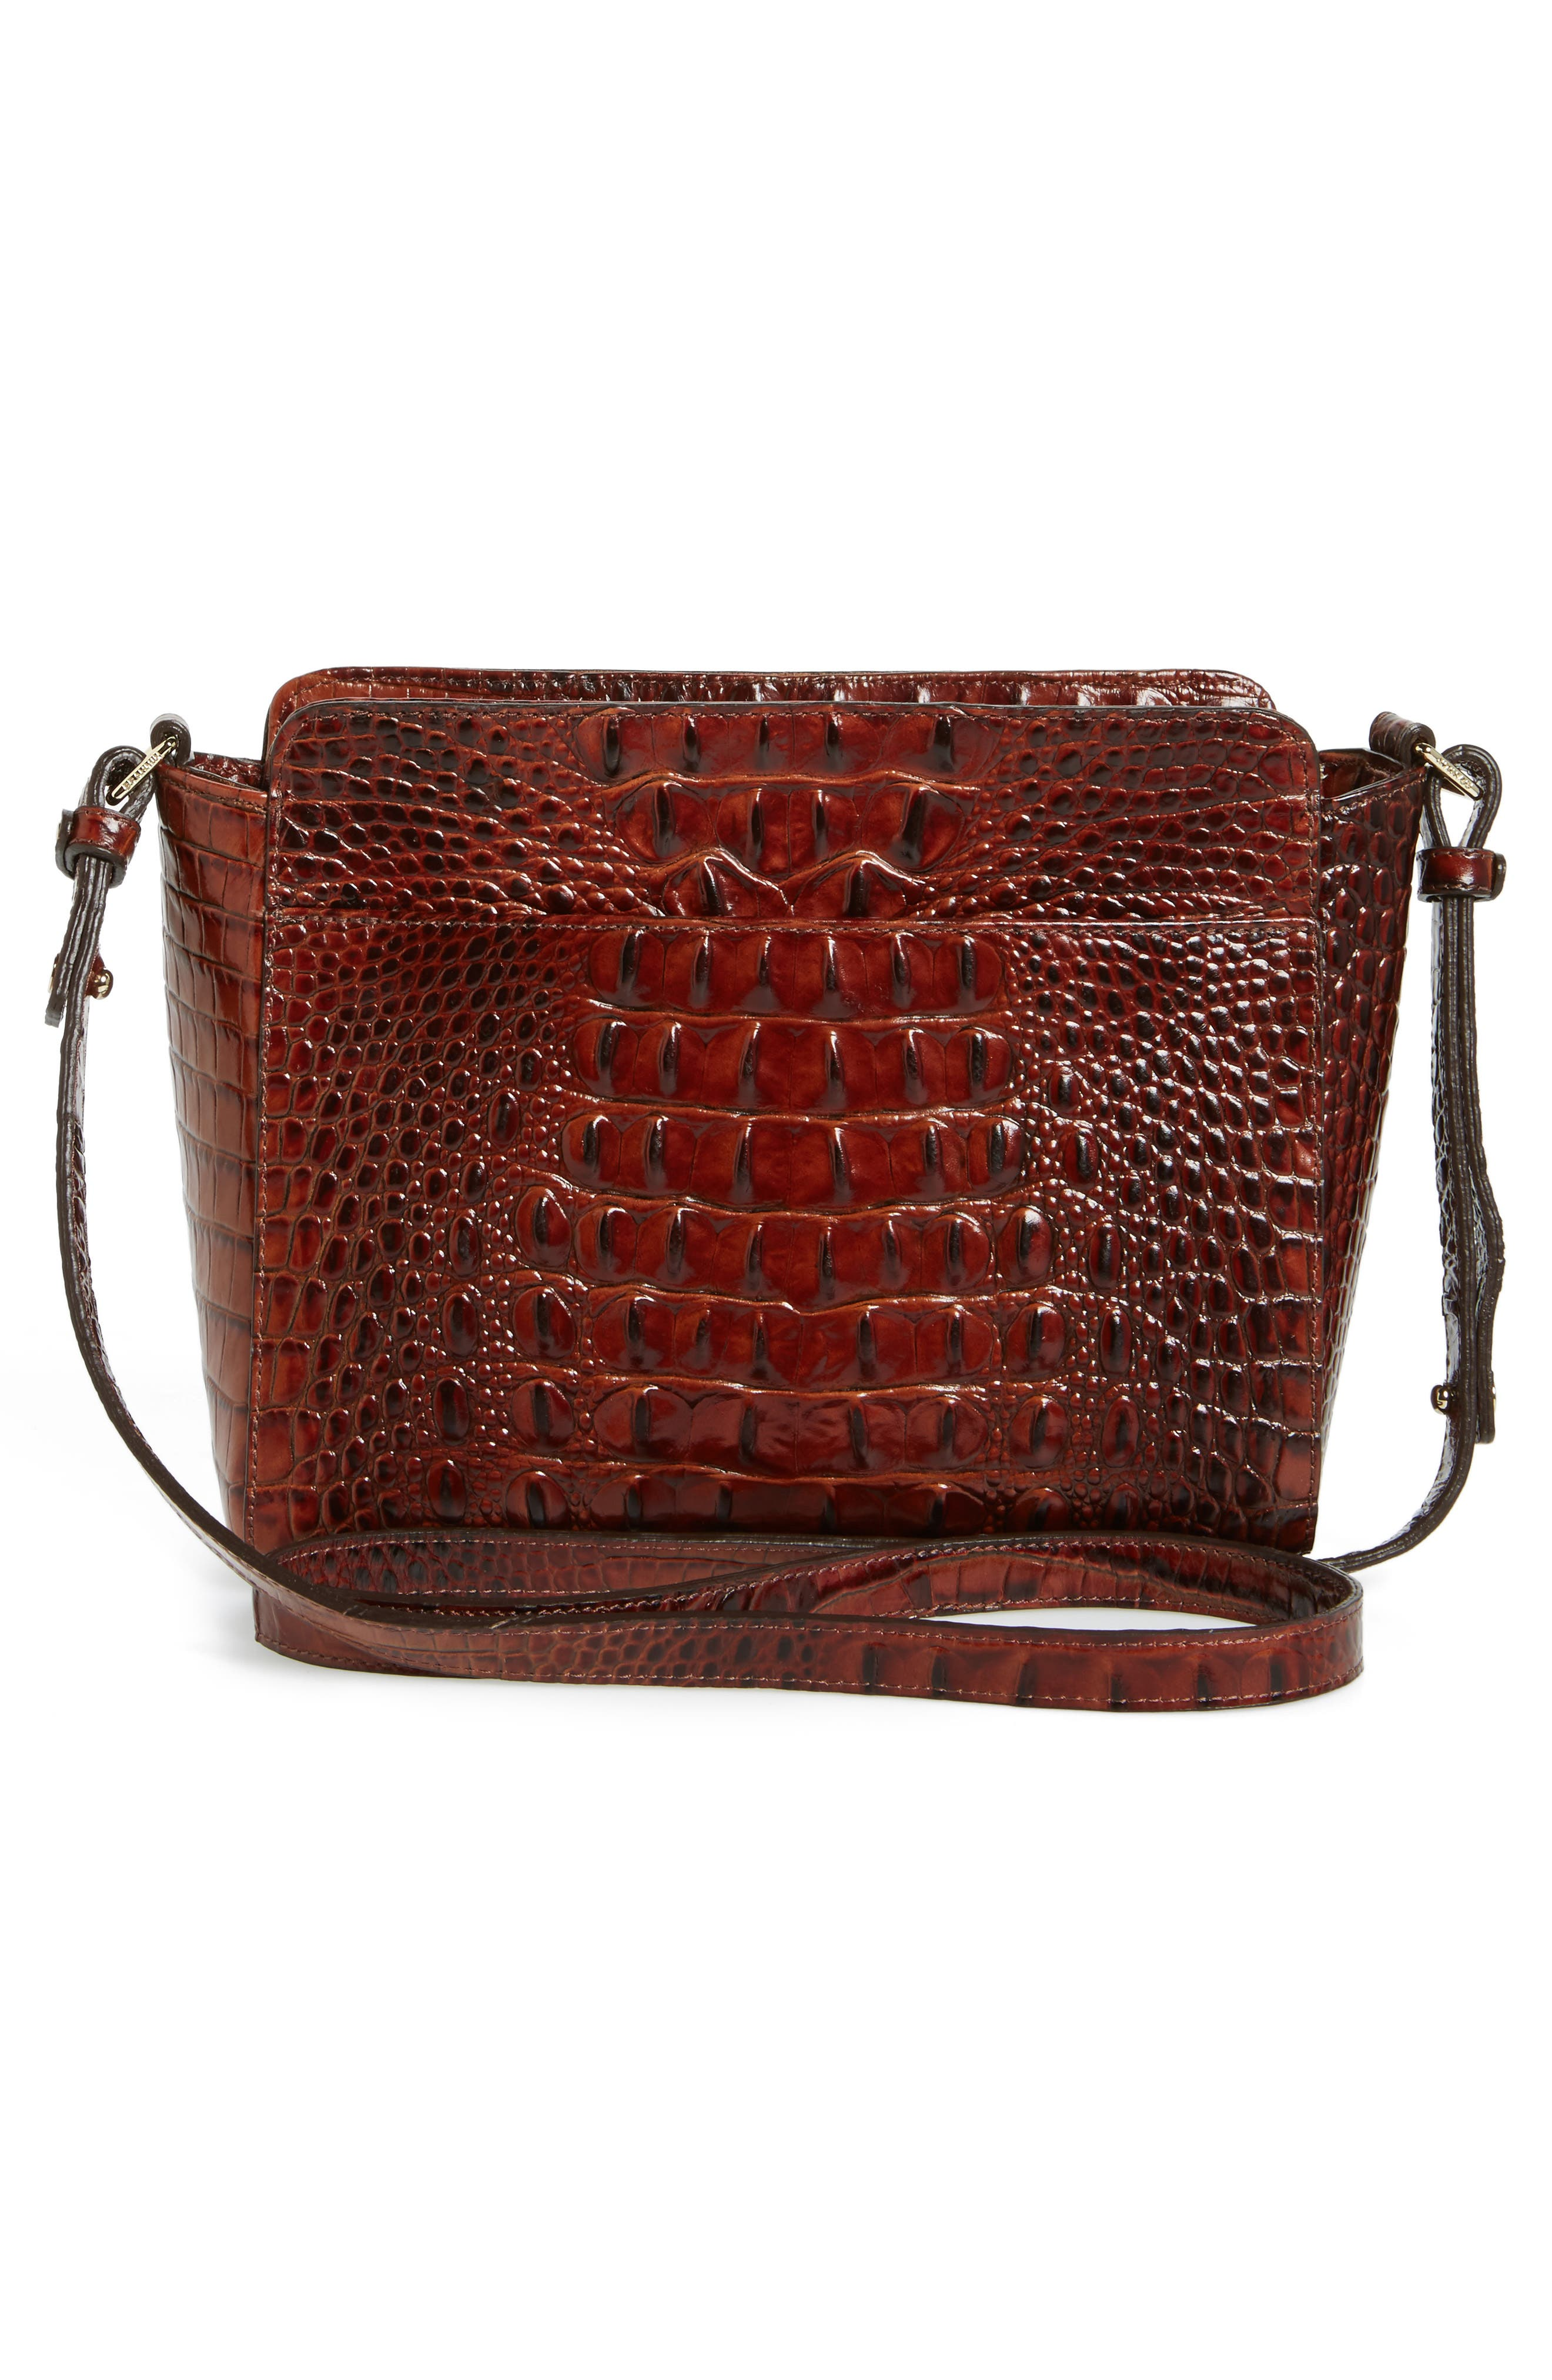 Melbourne Carrie Leather Crossbody Bag,                             Alternate thumbnail 8, color,